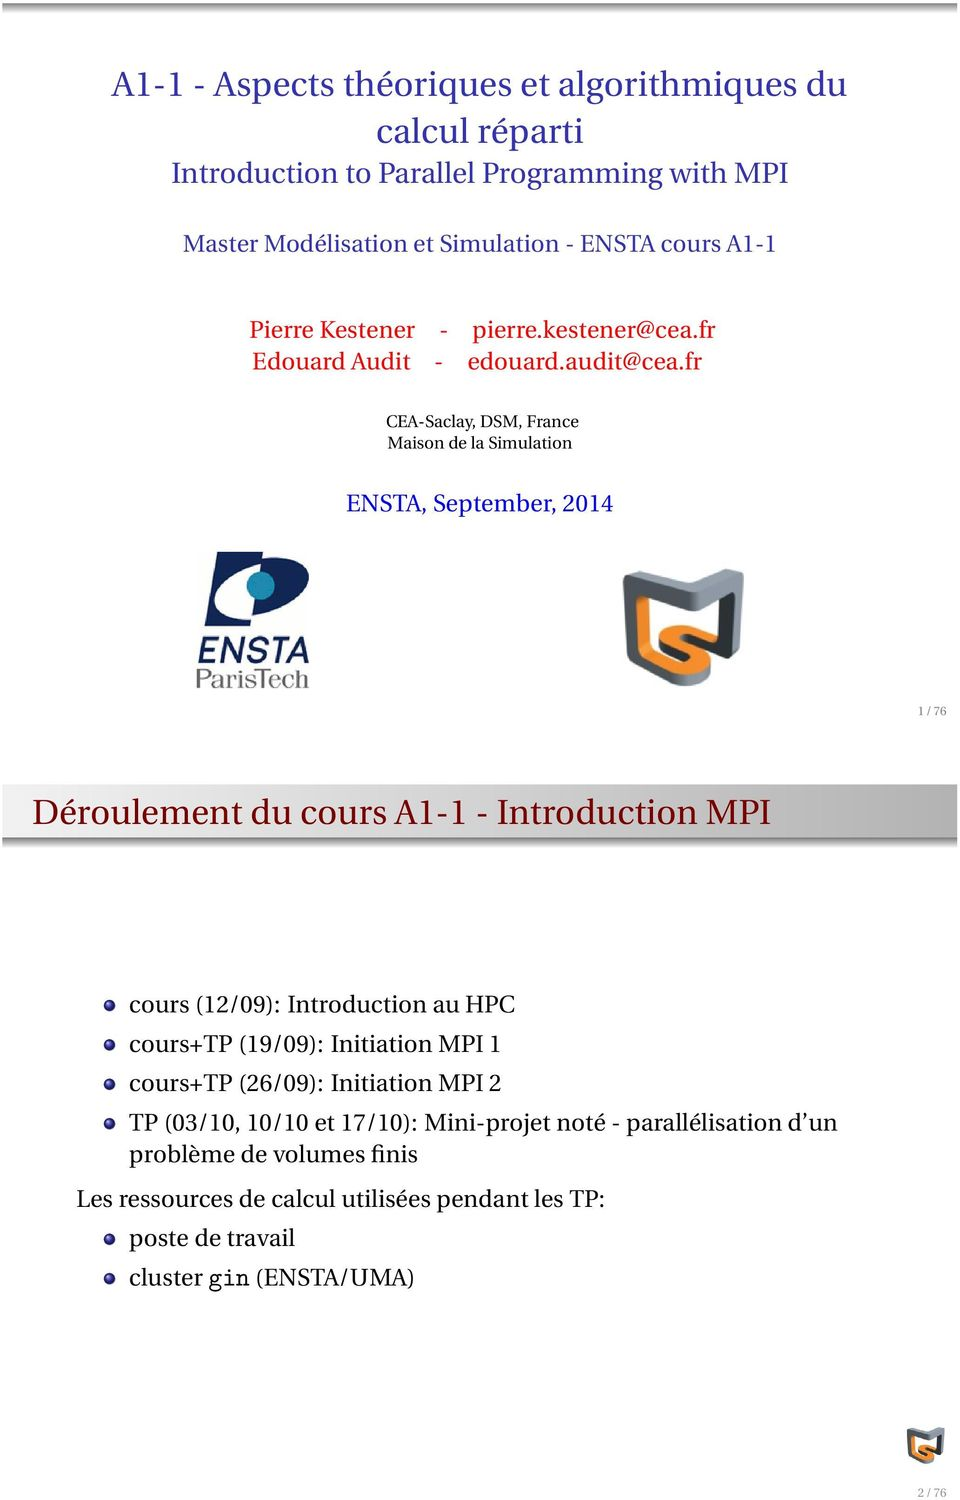 fr CEA-Saclay, DSM, France Maison de la Simulation ENSTA, September, 2014 1/76 Déroulement du cours A1-1 - Introduction MPI cours (12/09): Introduction au HPC